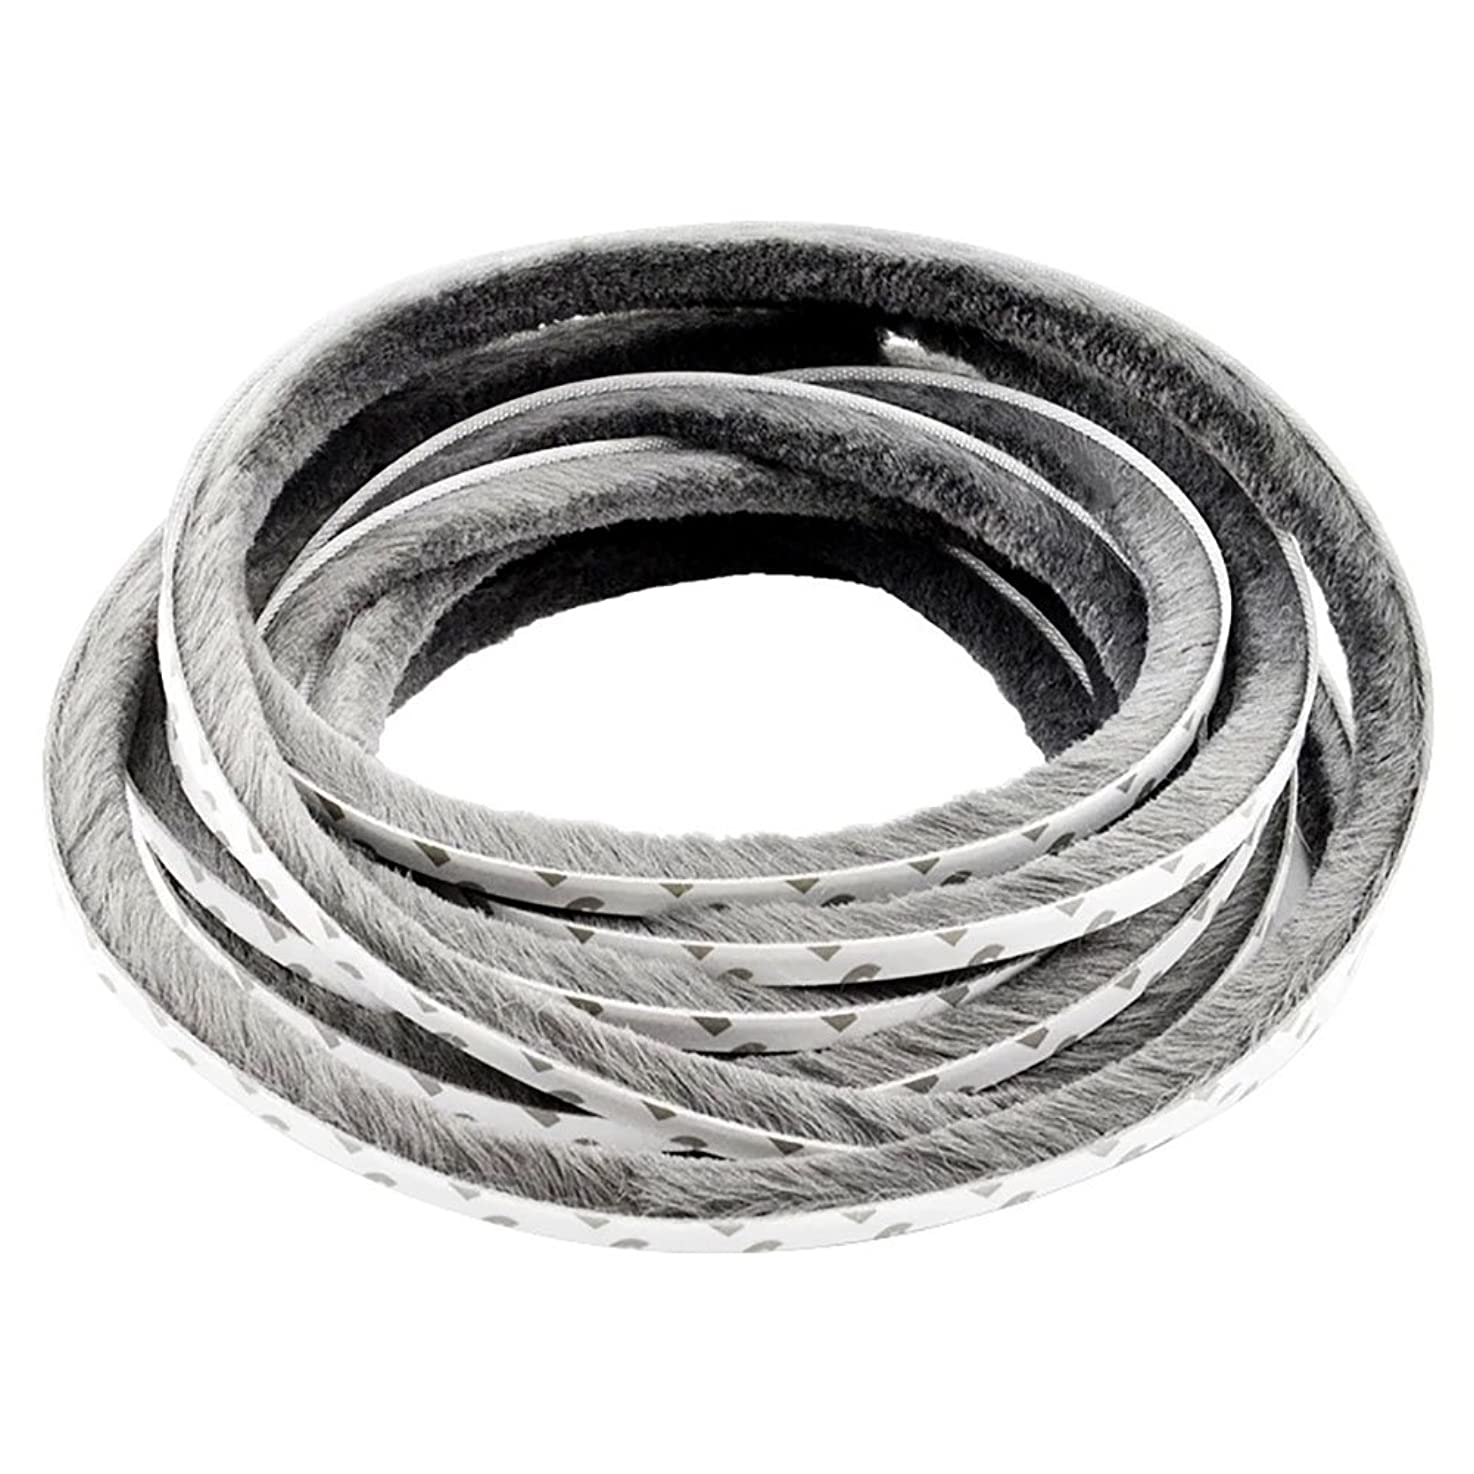 T&B Self-Adhesive Pile Weatherstrip for Windows & Doors 3/8 in. W x 1/4 in. H Grey 12m (39.3ft)